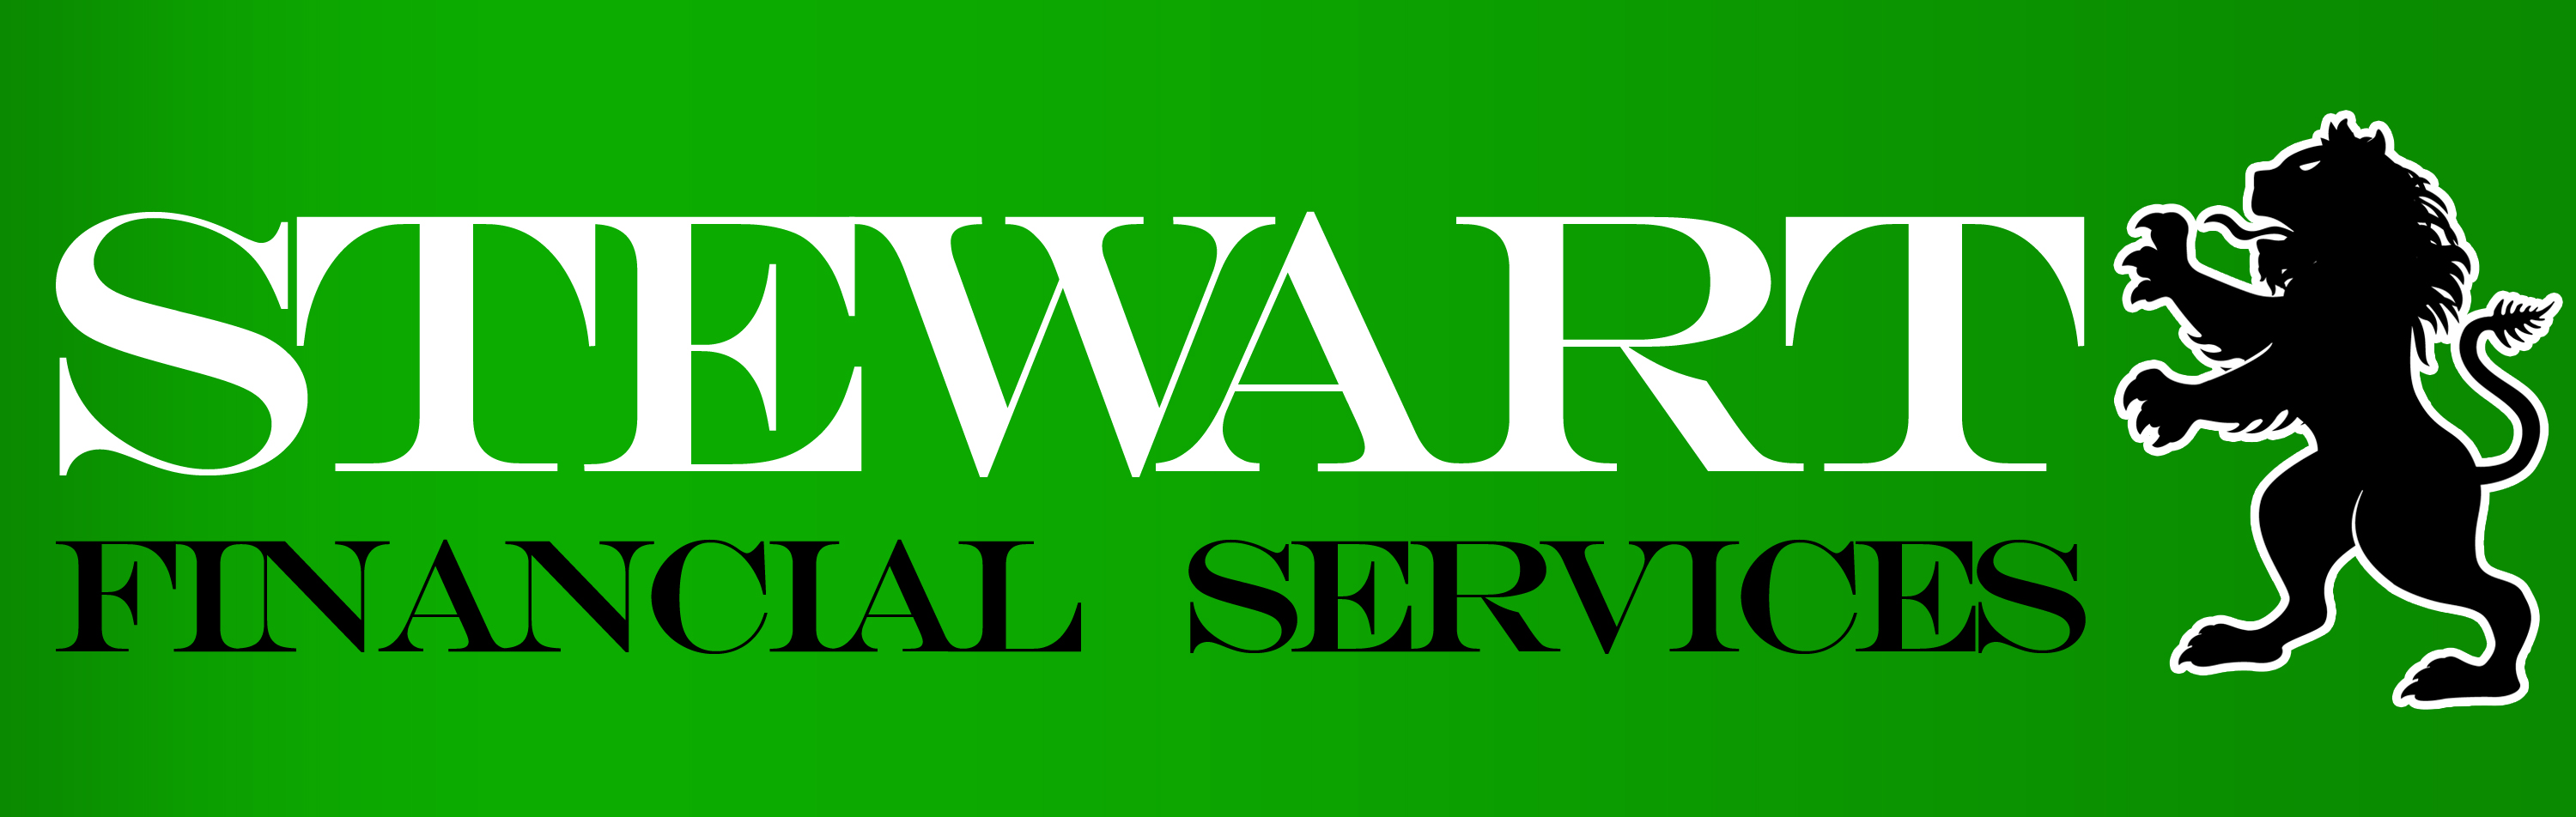 stewart-financial-logo